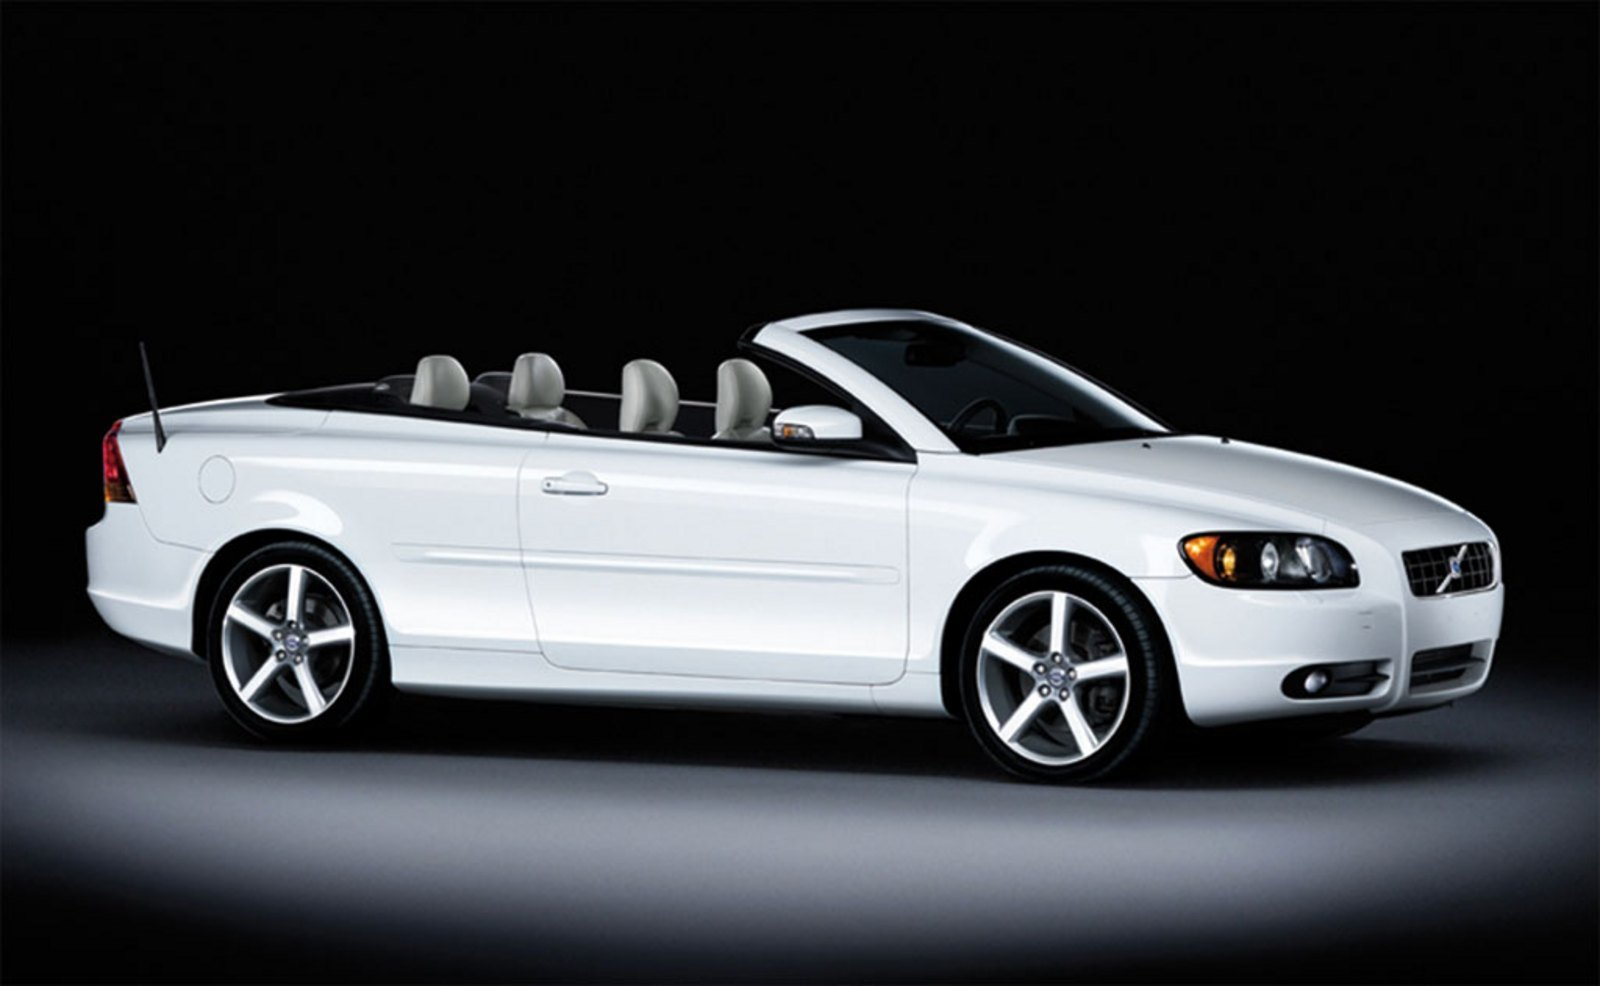 2009 Volvo C70 Ice White Review - Top Speed